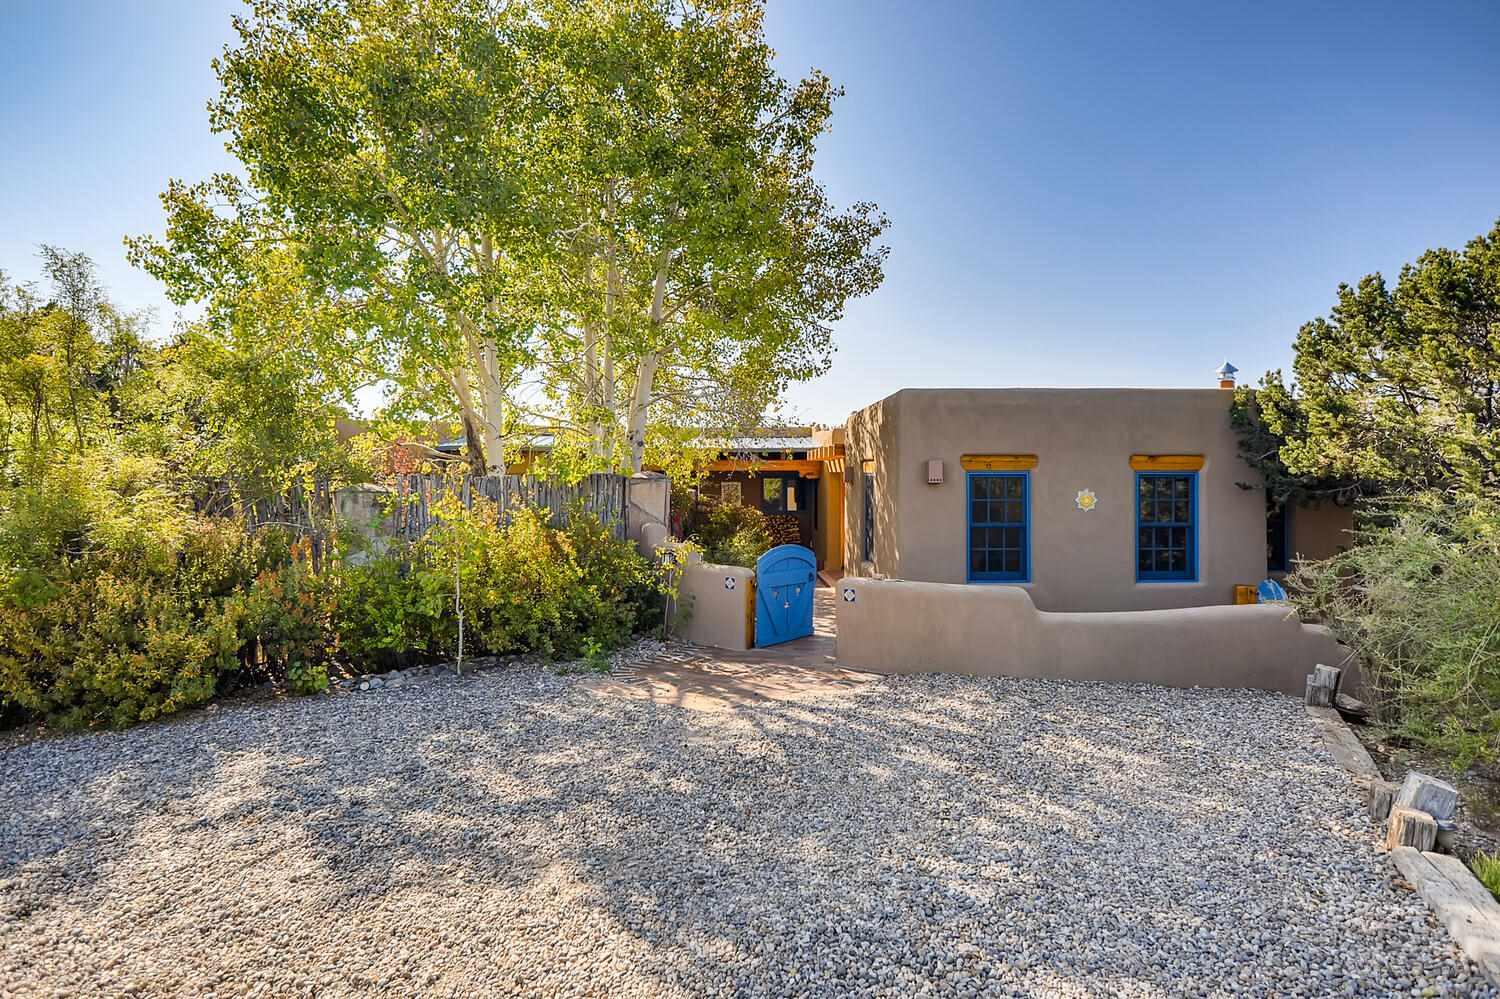 Big dramatic views of the Sangres and Jemez Mtns. The entrance is gated.The house and guest house were remodeled and expanded in 2015 ,the 300sf passive solar studio/workshop was built in 2017.The property offers 3.6 private, beautifully treed acres. The main home offers 2bds, 2 bths, a newly built office, family rm, pantry and nook.The guest house offers1 bd 1 bth. There is a 2 car garage and carport.Living spaces are heated and cooled by mini splits.The main house has tile floors, wood ceilings, 3 fireplaces, customdoors, cabinets, shelves, nichos, bancos, skylights and views from every room. A brick entry, 2 decks, flagstone terrace, in groundwater feature, and walled garden surround it. The living room and master have Sangre views The open dining and sunrooms are filled with light. The kitchen with all newer appliances has cabinets painted by a local artist. The remodeled bathrooms have artistic tilesand a steam shower.The charming guest house has tile floors, wood ceilings, custom cabinets, full bath, BIG Sangre views and a covered deck. The 2 car garage with laundry is attached. The passive solar studio/workshop is light-filled with a wood stove and electric back up. There are 2 custombuilt storage sheds. This amazing property is10 minutes to downtown Santa Fe and an easy commute to Los Alamos.